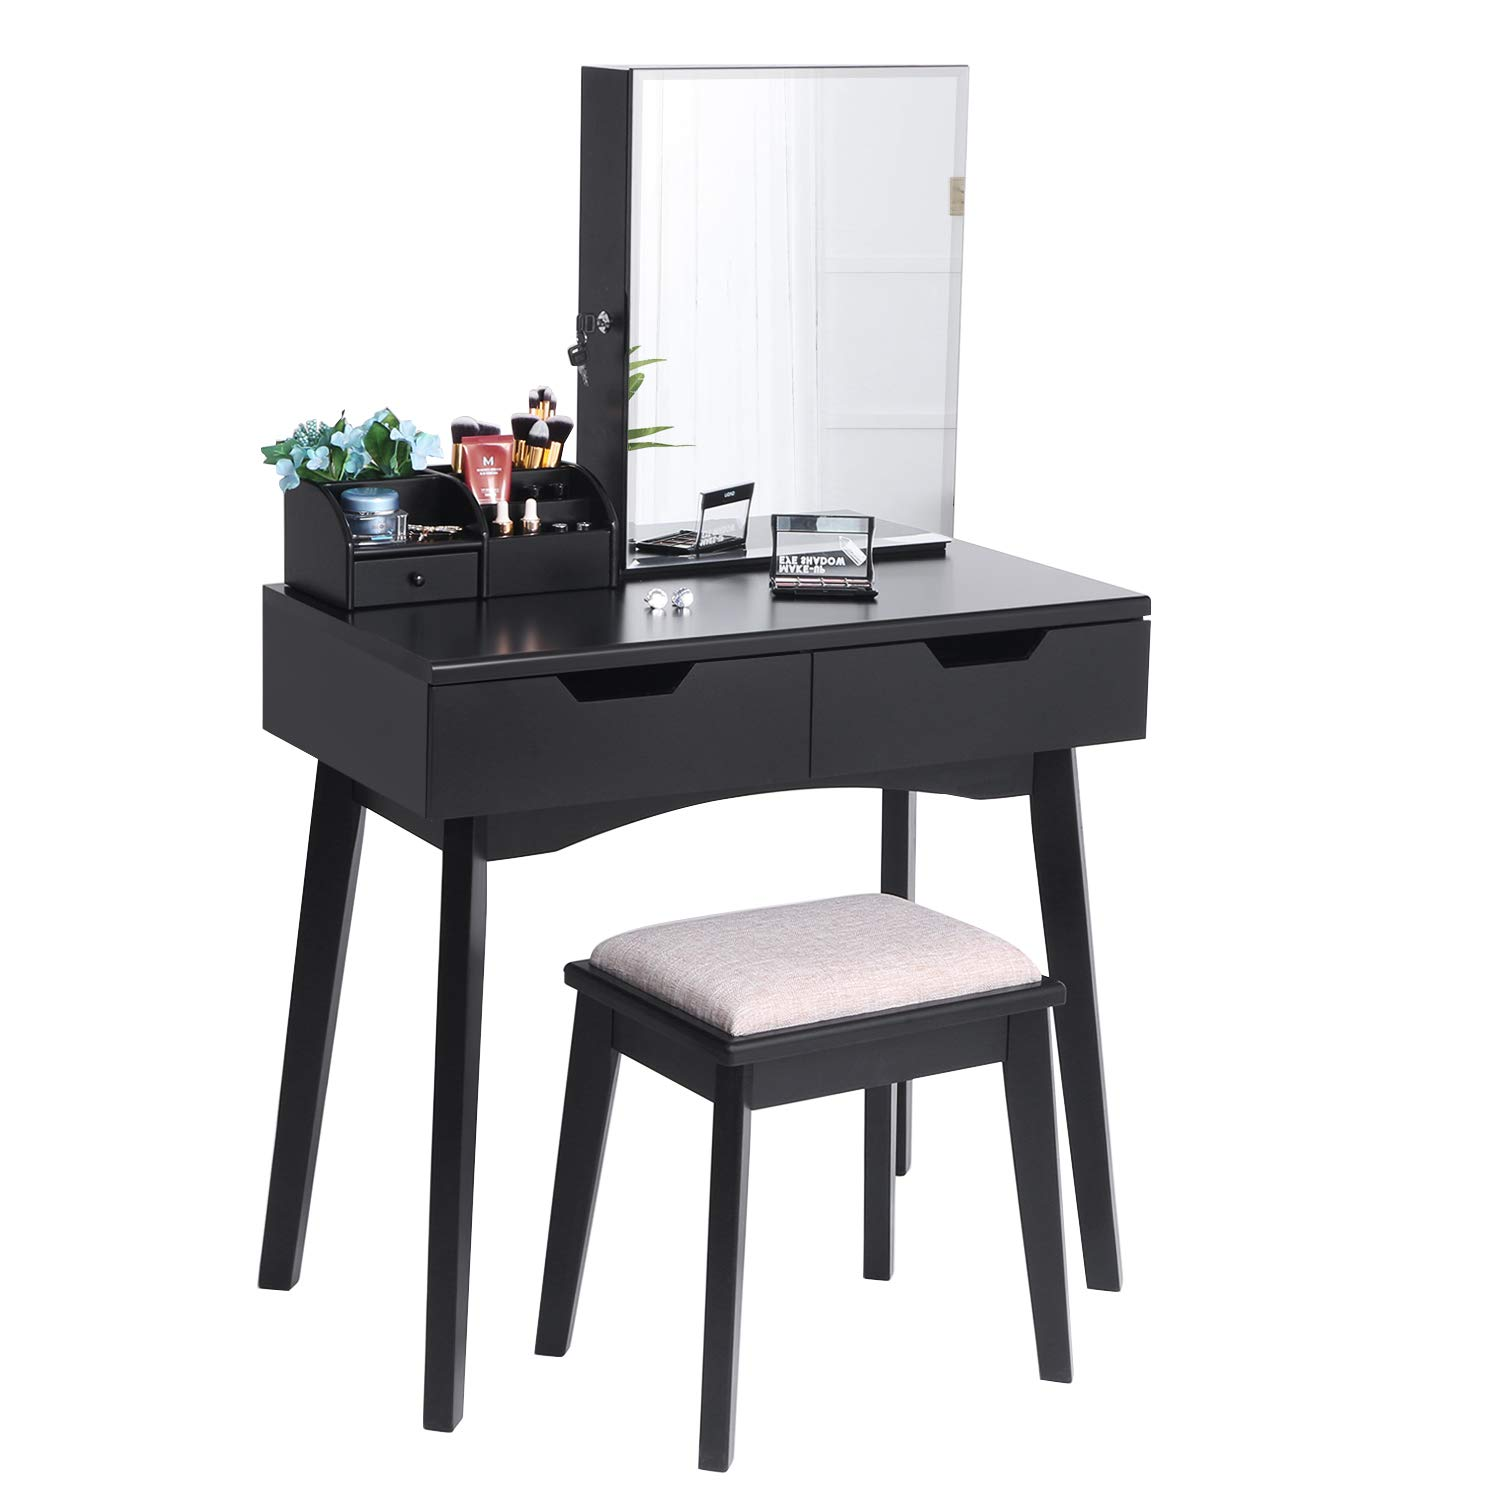 BEWISHOME Makeup Vanity Table Set, Lockable Jewelry Cabinet with Mirror, Makeup Organizer, Cushioned Stool, 2 Sliding Drawers Vanity Desk Dressing Table Black FST04H by BEWISHOME